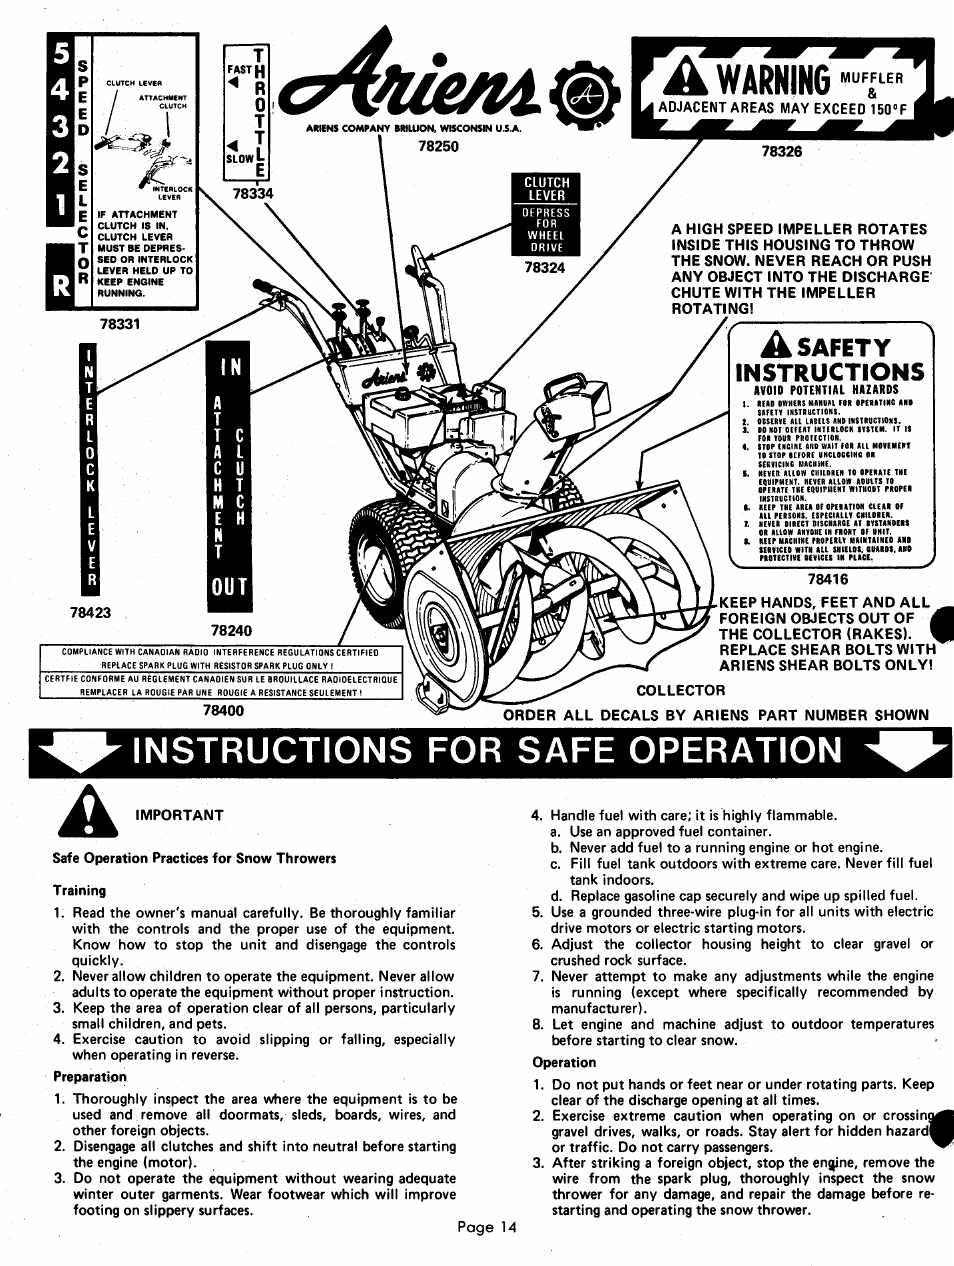 A safety instructions, Instructions for safe operation